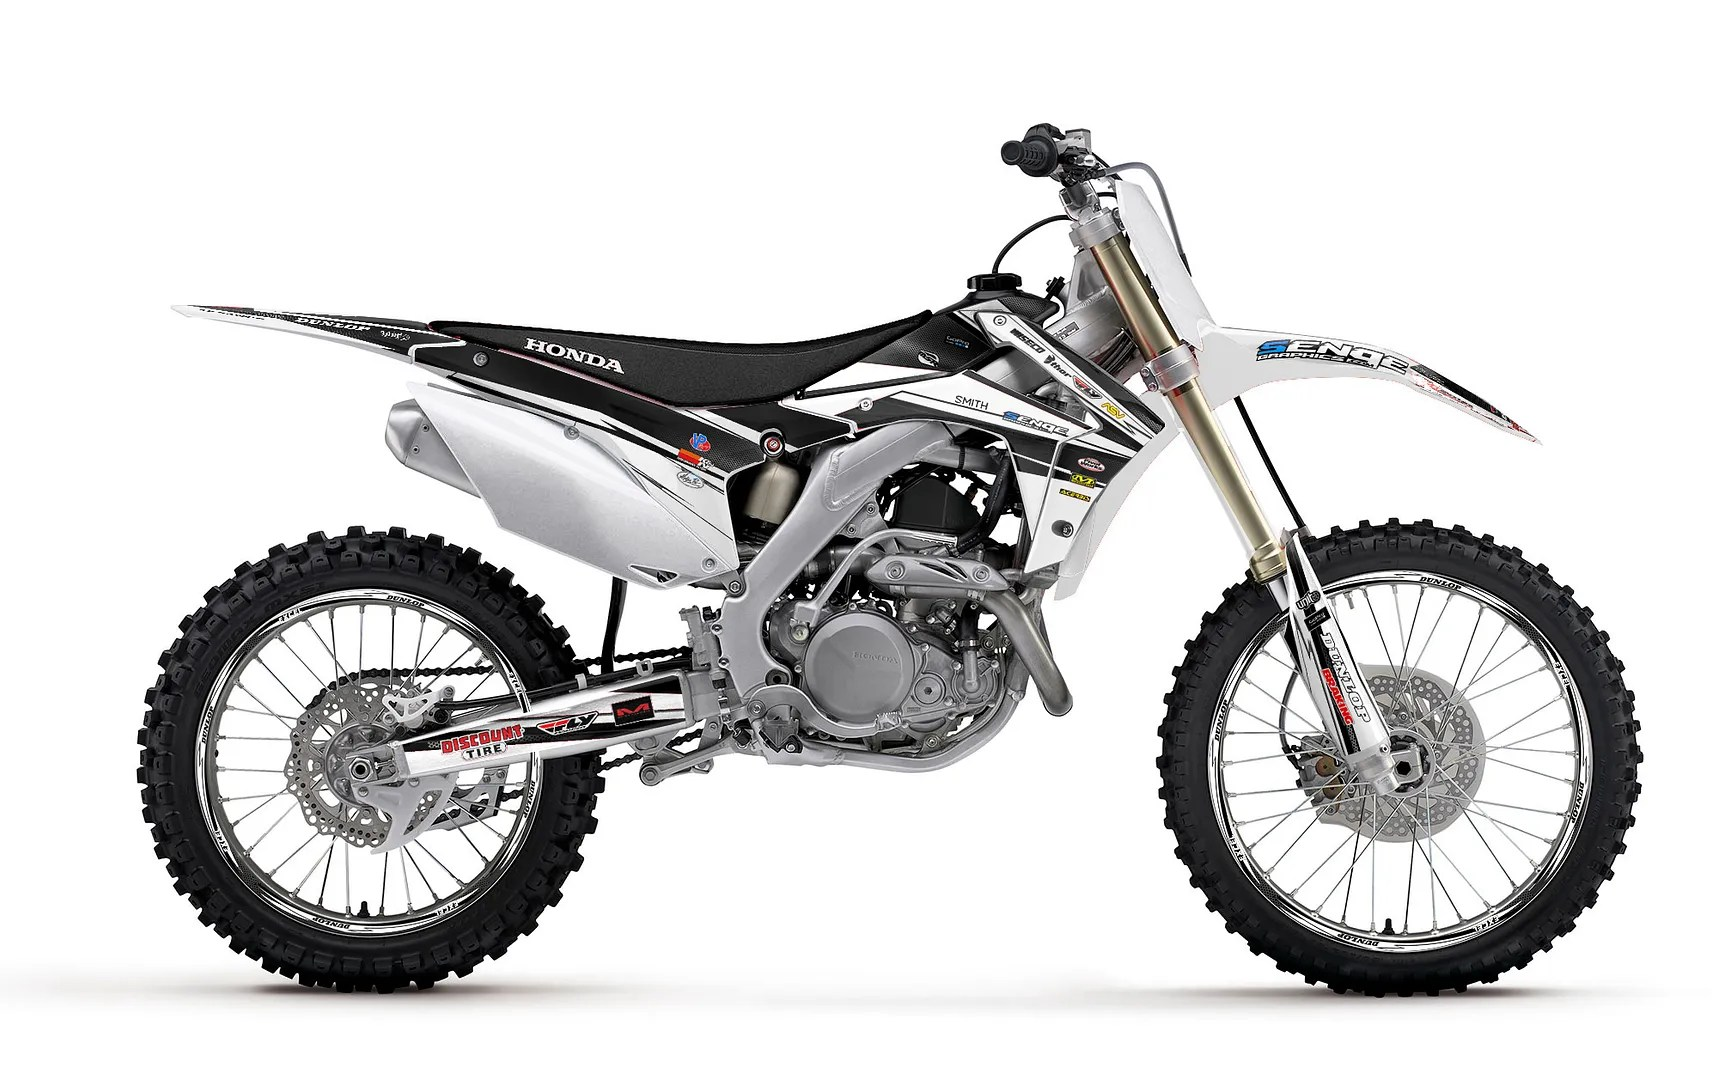 2009 2010 2011 2012 CRF 450R GRAPHICS KIT CRF450R 450 R